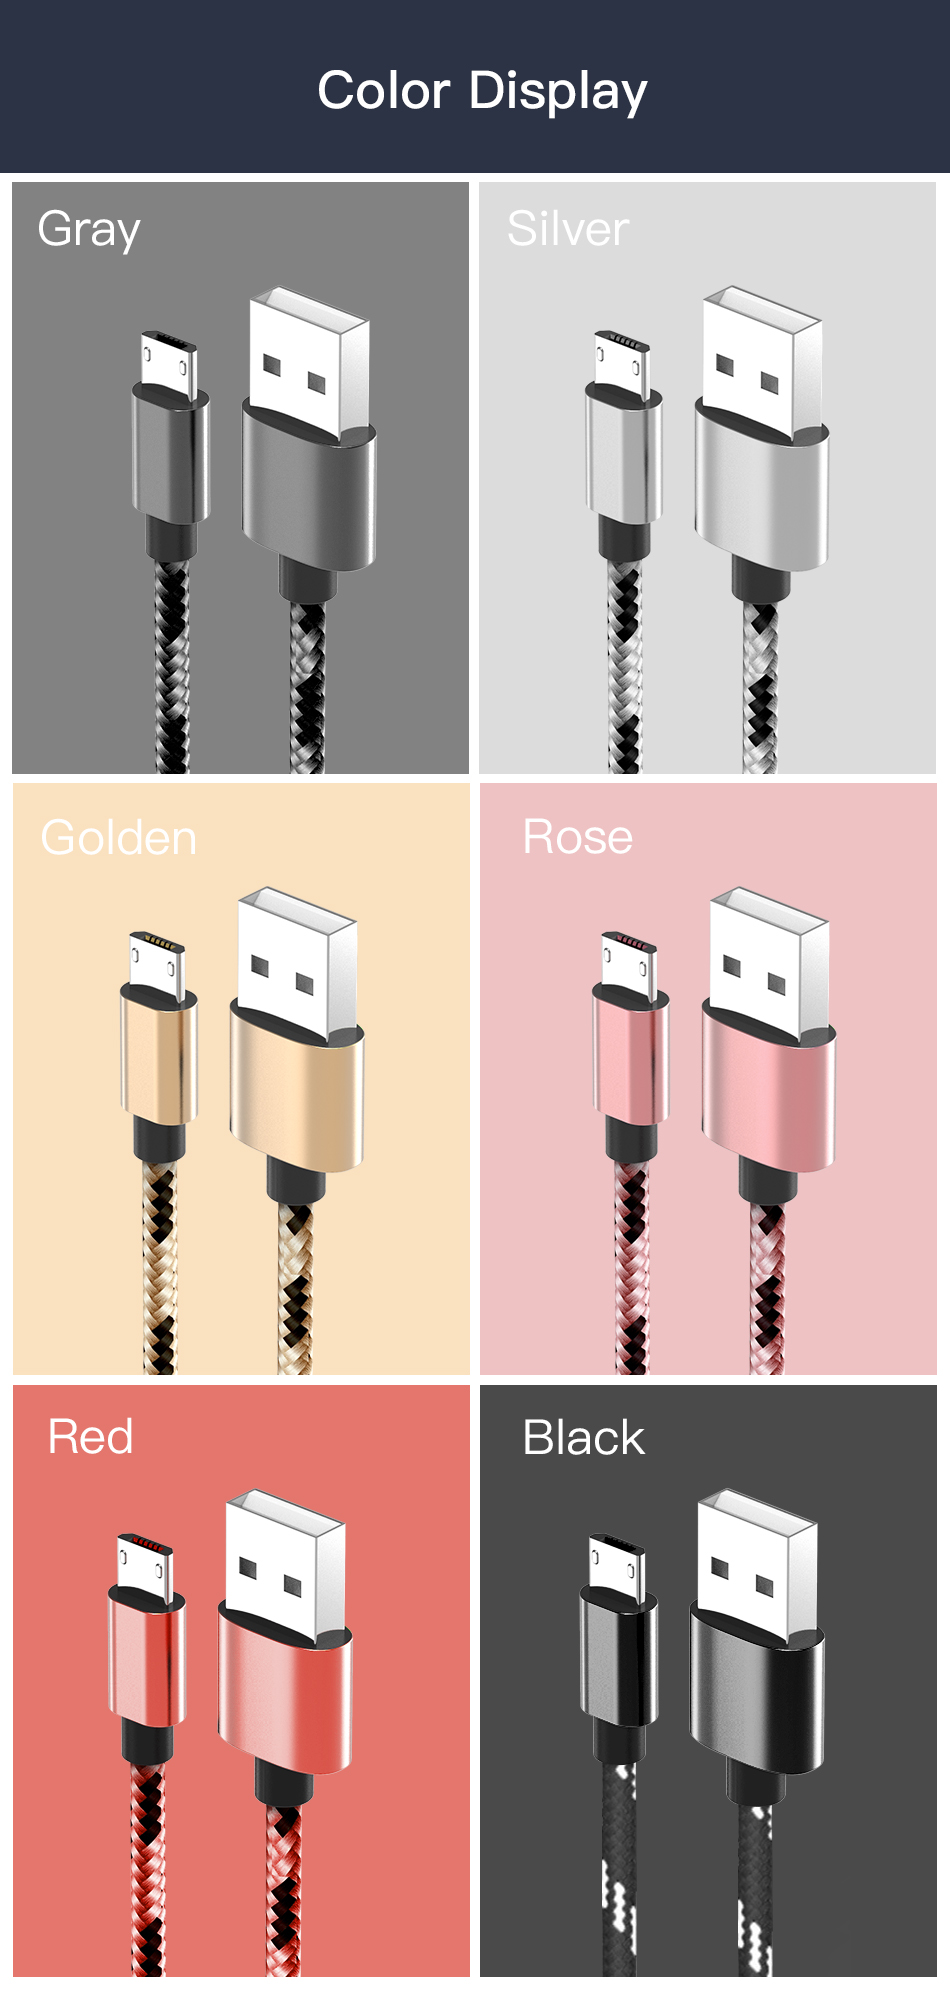 !ACCEZZ 2.4A Micro USB Cable For Samsung Galaxy S7 S6 Xiaomi Redmi 4A Android Mobile Phone Charger Cable Cord Durable Data Wire (6)